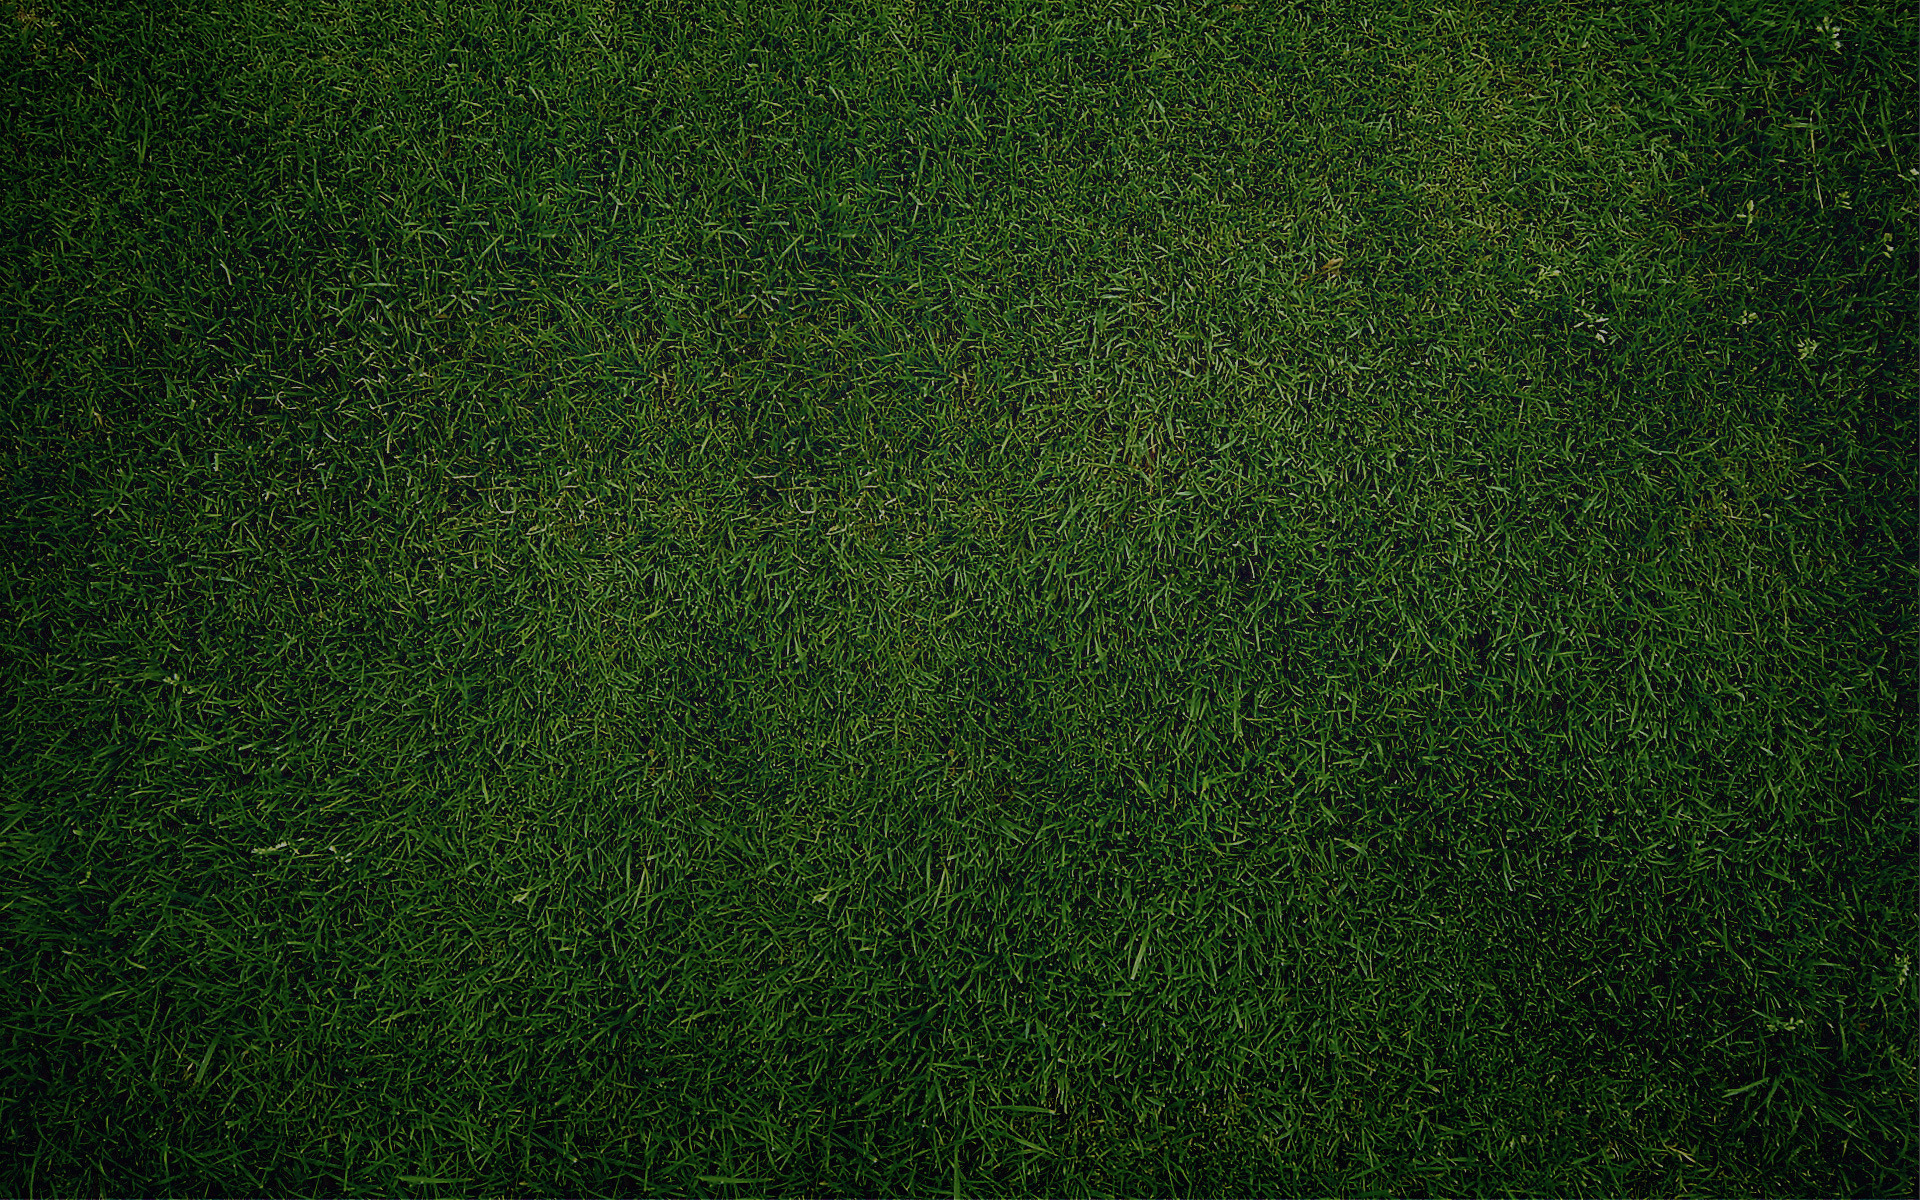 grass background texture - photo #18